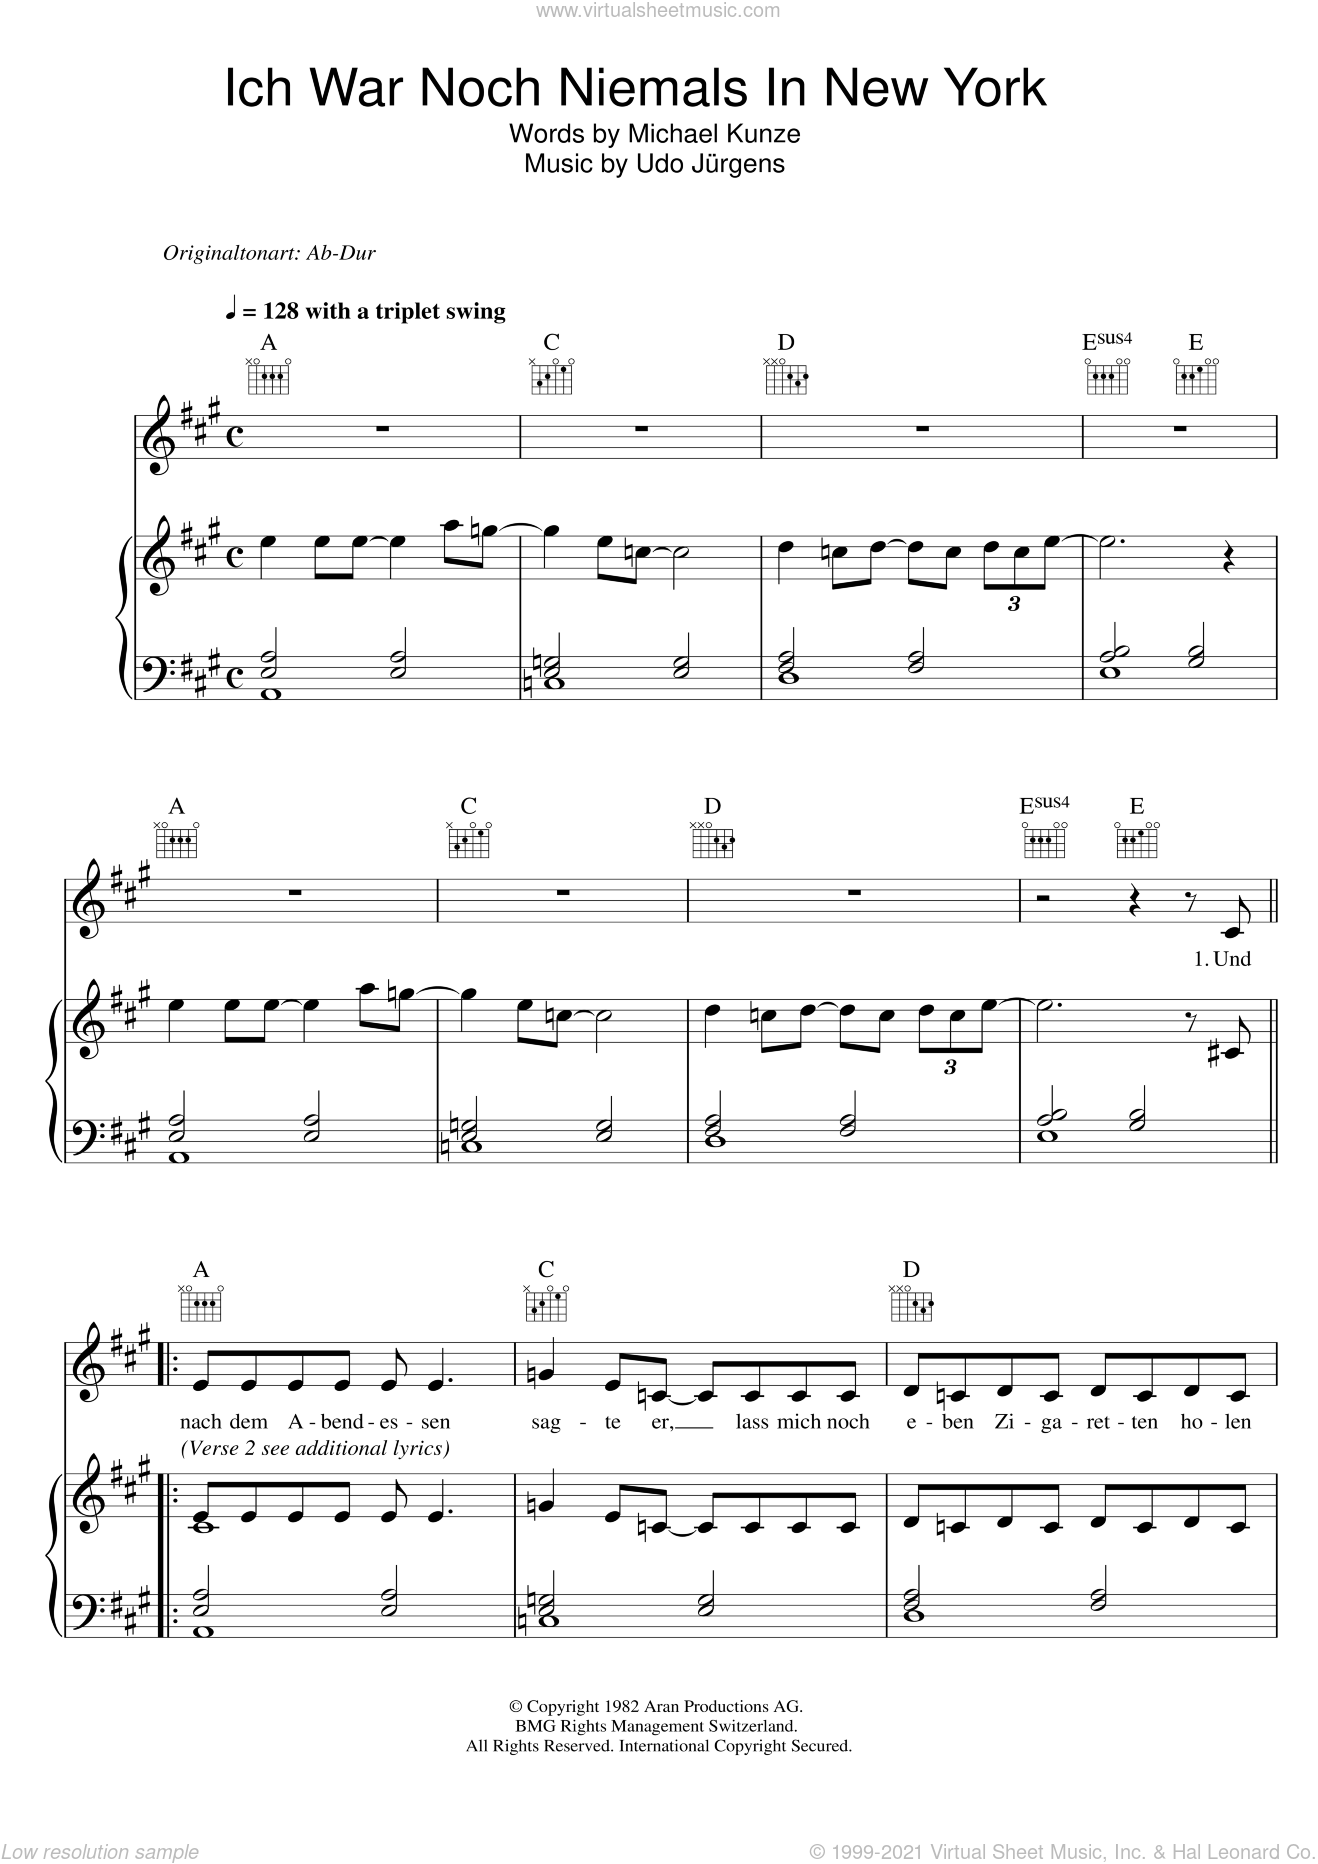 Ich War Noch Niemals In New York sheet music for voice, piano or guitar by Udo Jürgens, intermediate skill level